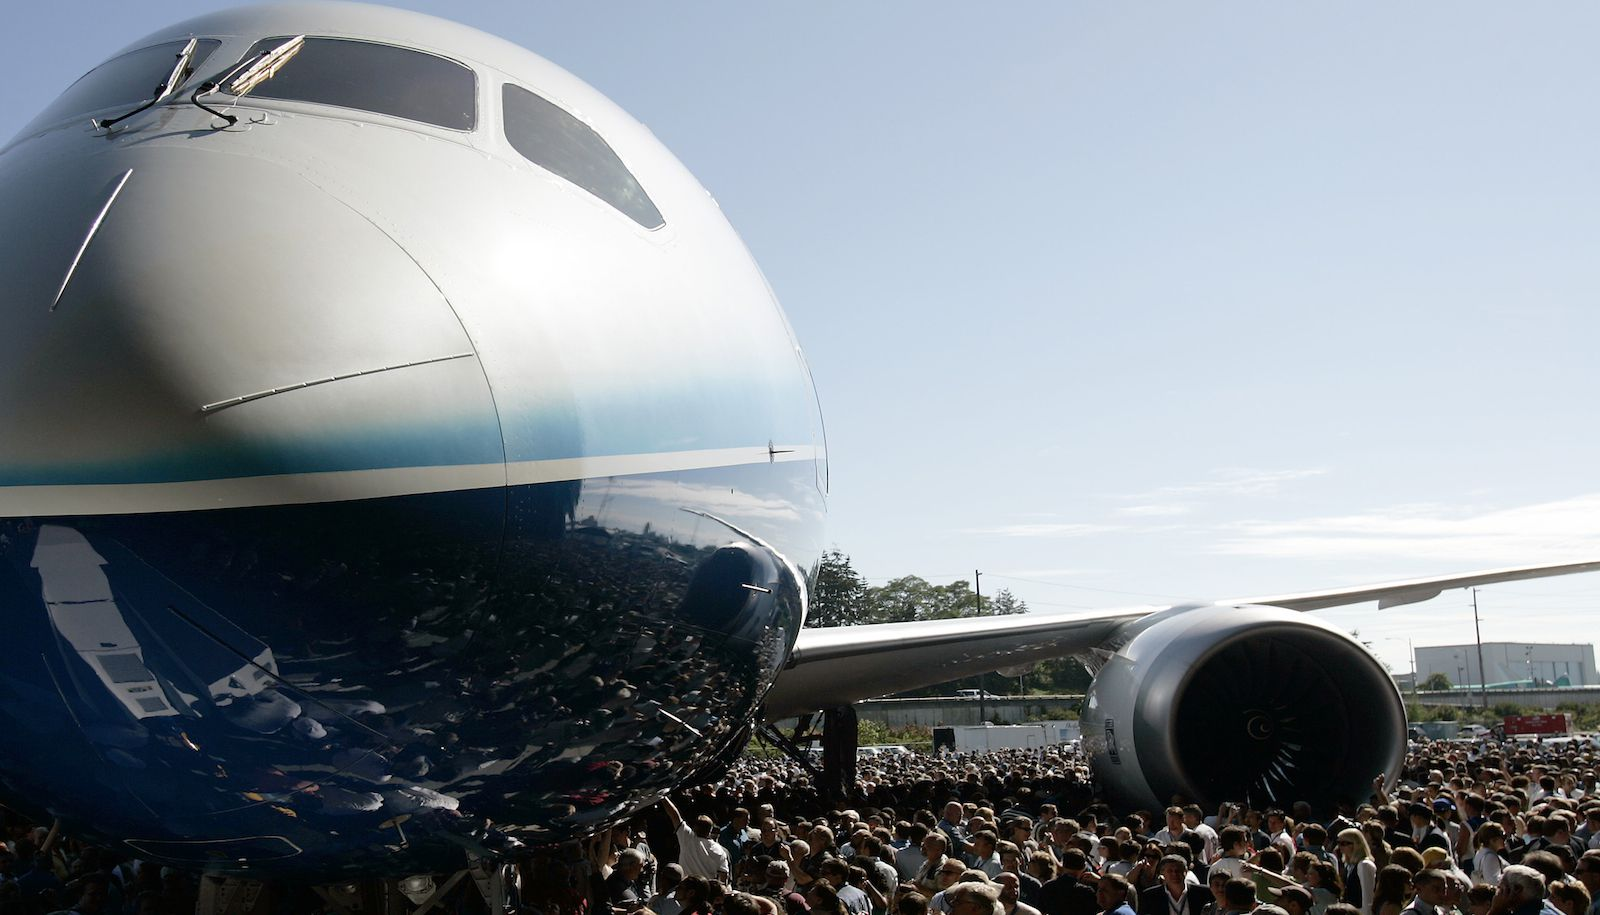 The Boeing 787 Dreamliner aircraft is surrounded by employees and special guests during its world premiere outside the Boeing assembly plant in Everett, Washington, July 8, 2007. Boeing Co. unveiled its lightweight, carbon-composite 787 Dreamliner on Sunday in front of 15,000 cheering employees, customers and suppliers, capping a weekend of hype and a flurry of orders for the new fuel-efficient plane.   REUTERS/Robert Sorbo (UNITED STATES) - RTR1RMY3